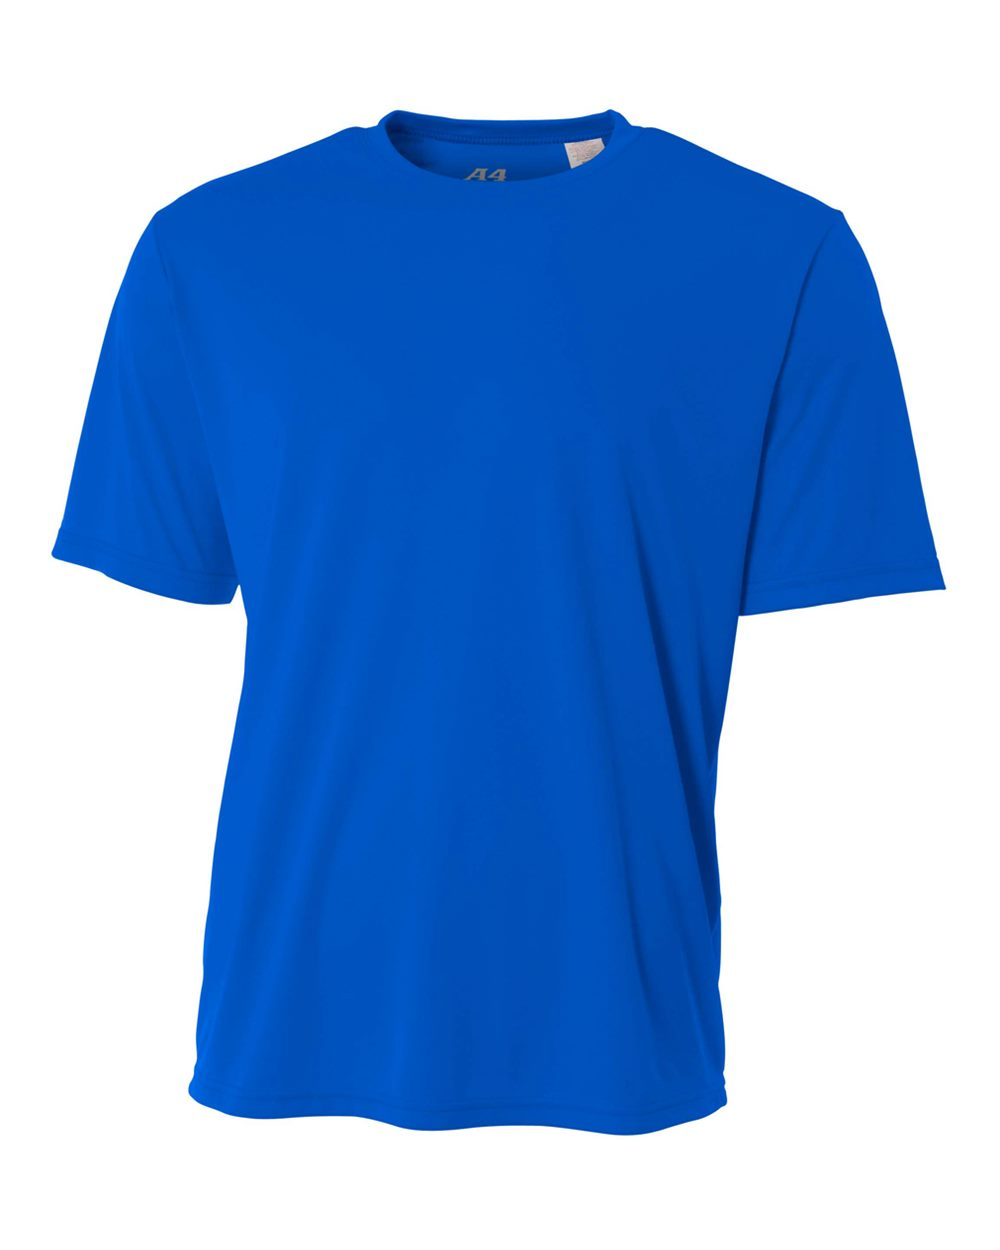 mw-polo-royal-blue.jpg